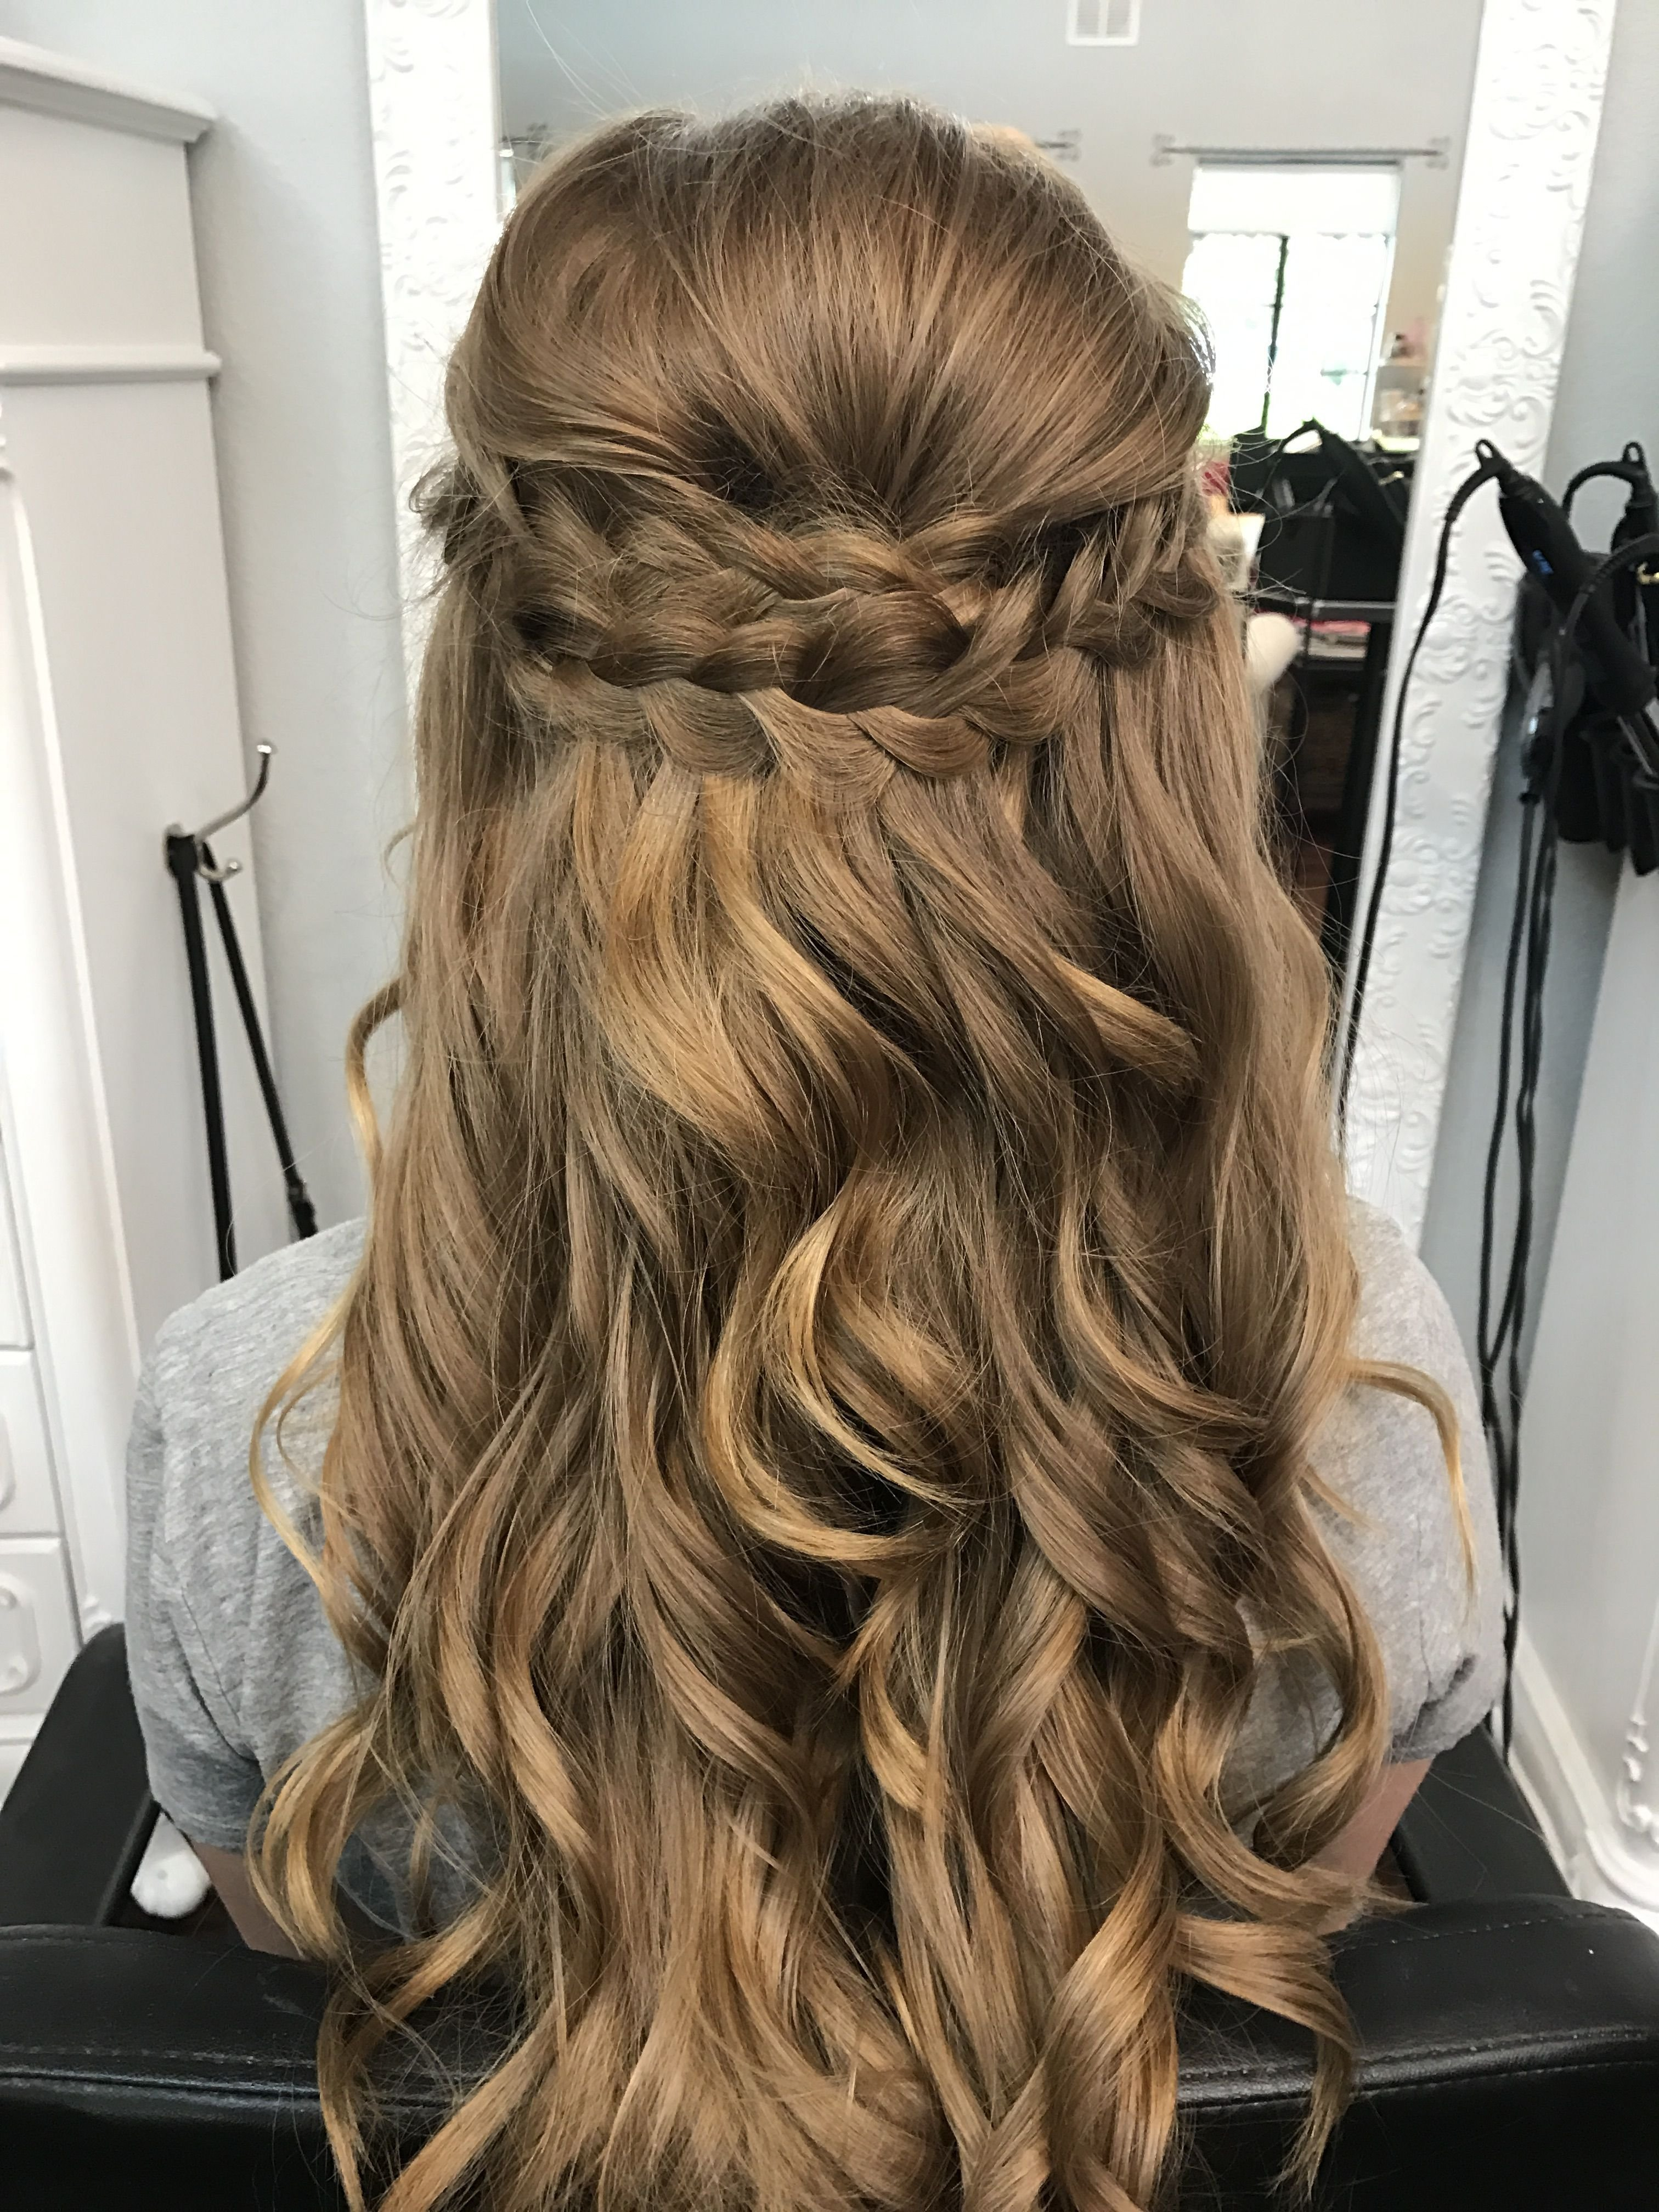 The Best Braided Half Up Half Down Prom Hair Bombshell Hair Pictures